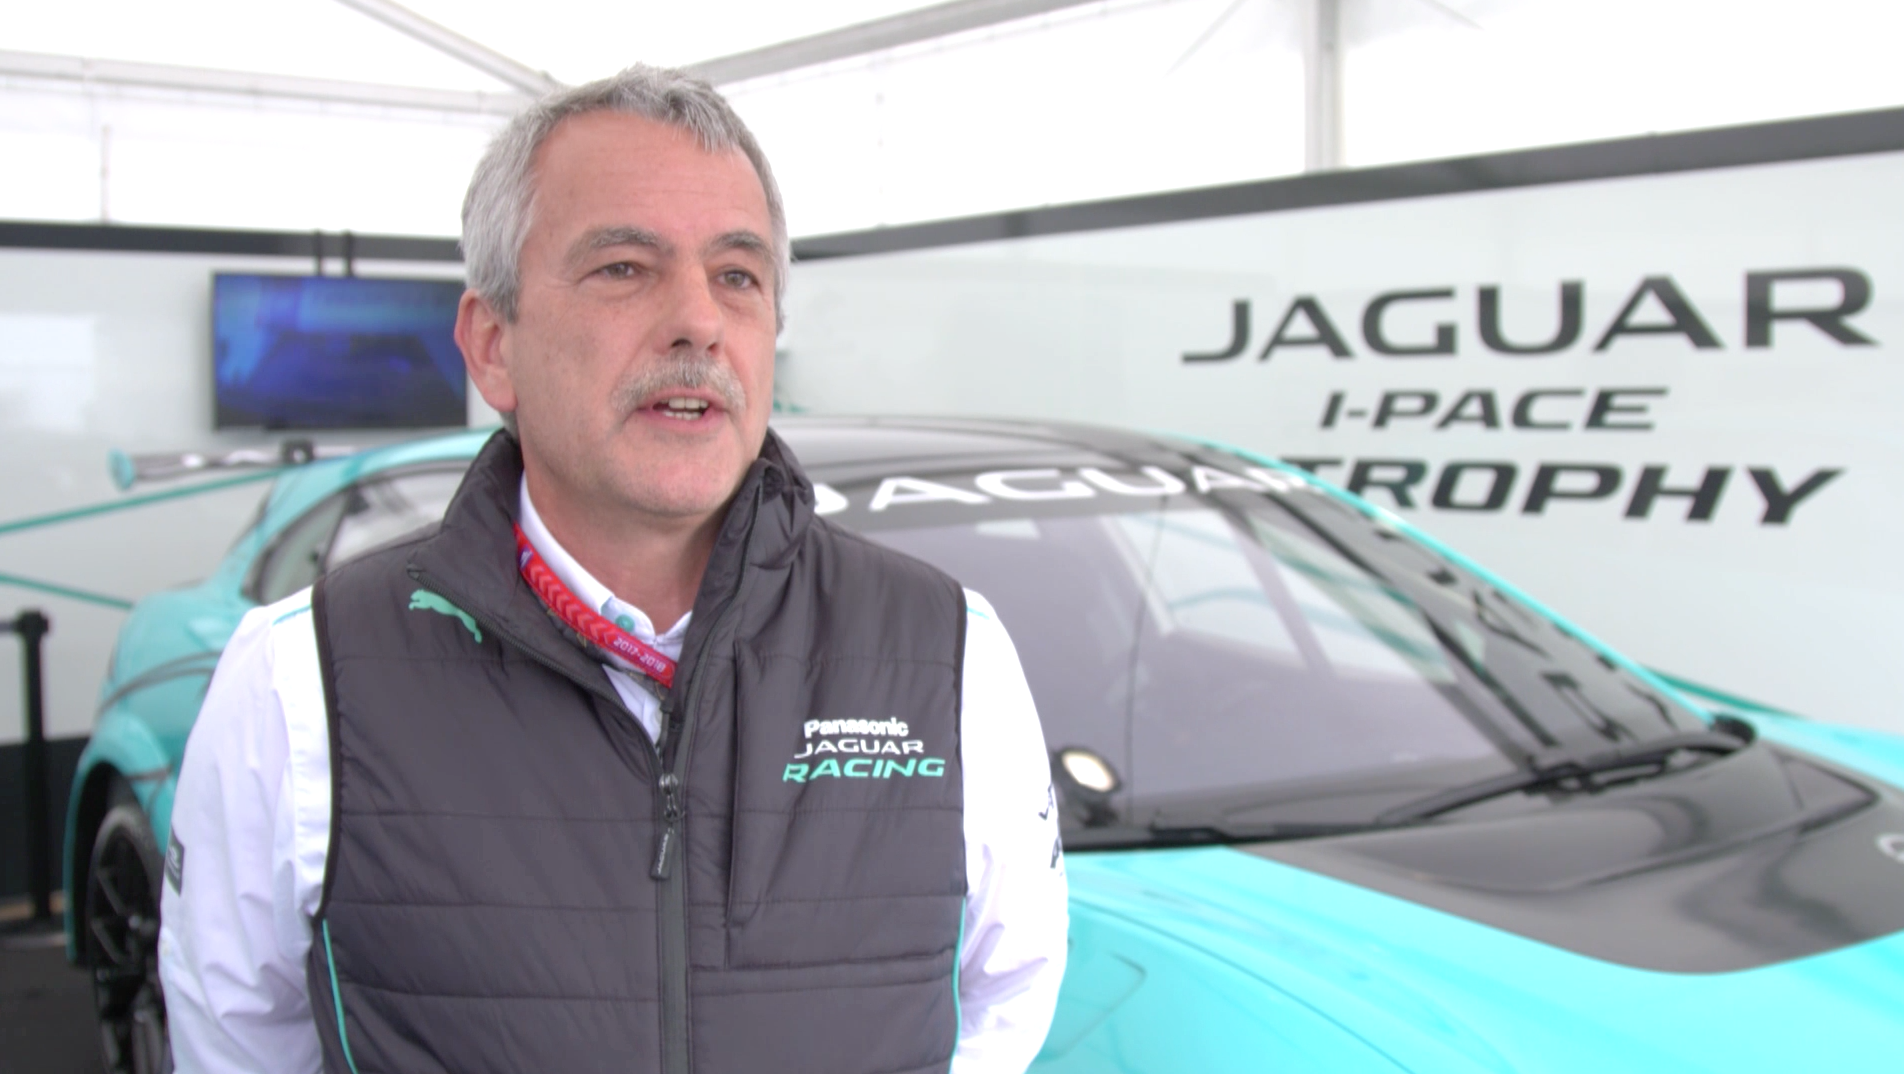 IV Gerd Mäuser, Chairman Jaguar Racing.